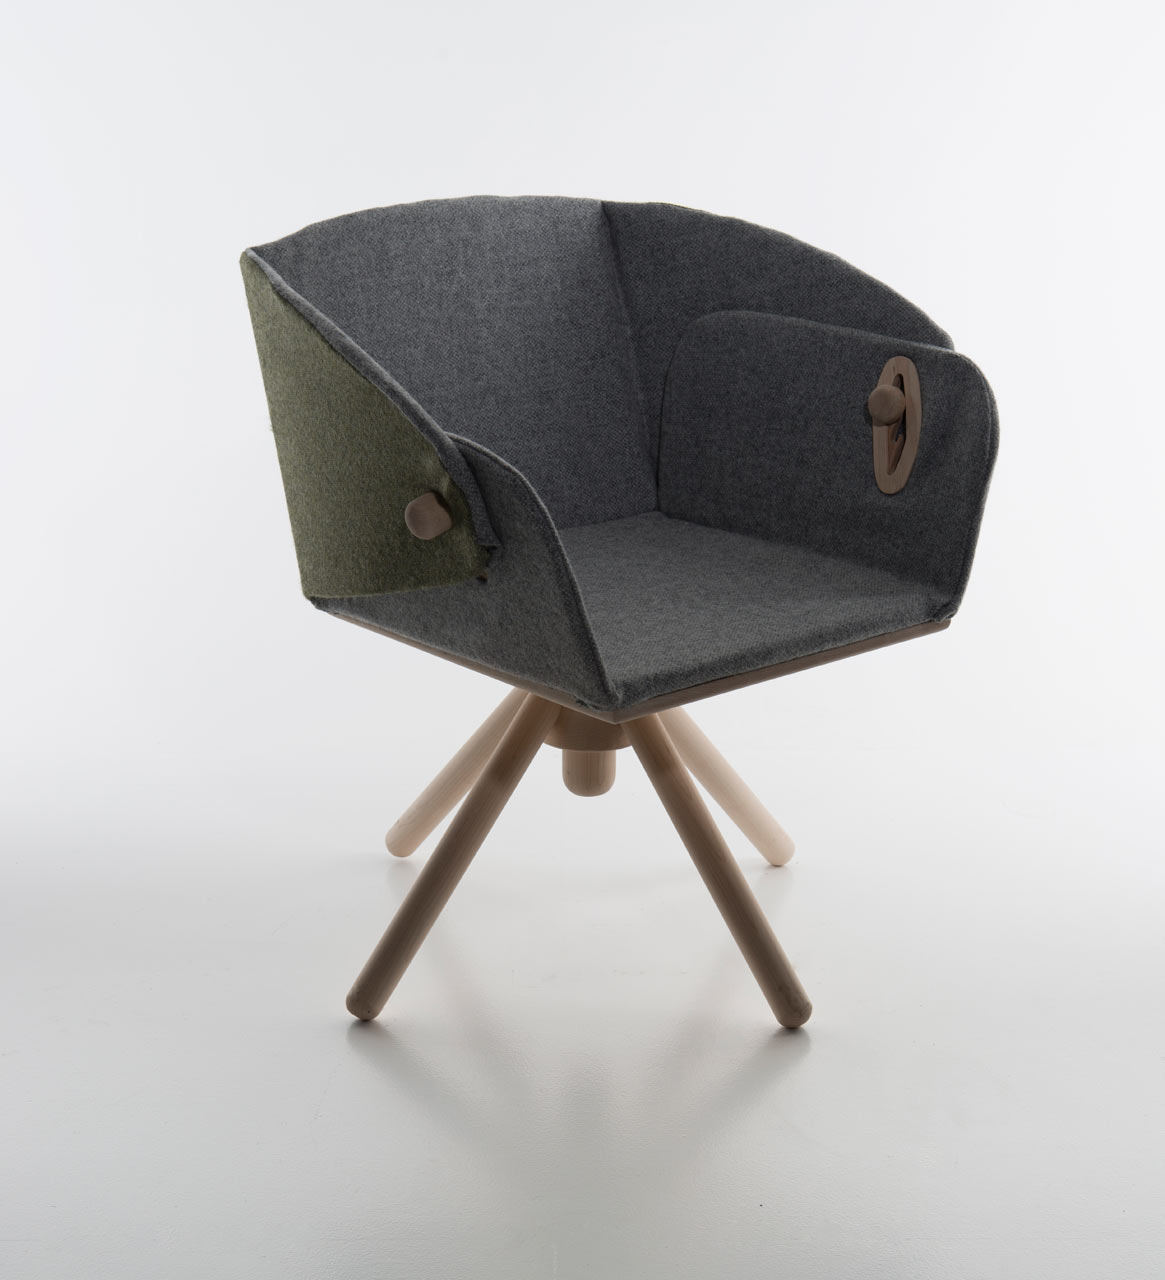 The Stockholm Chair by Karen Naalsund